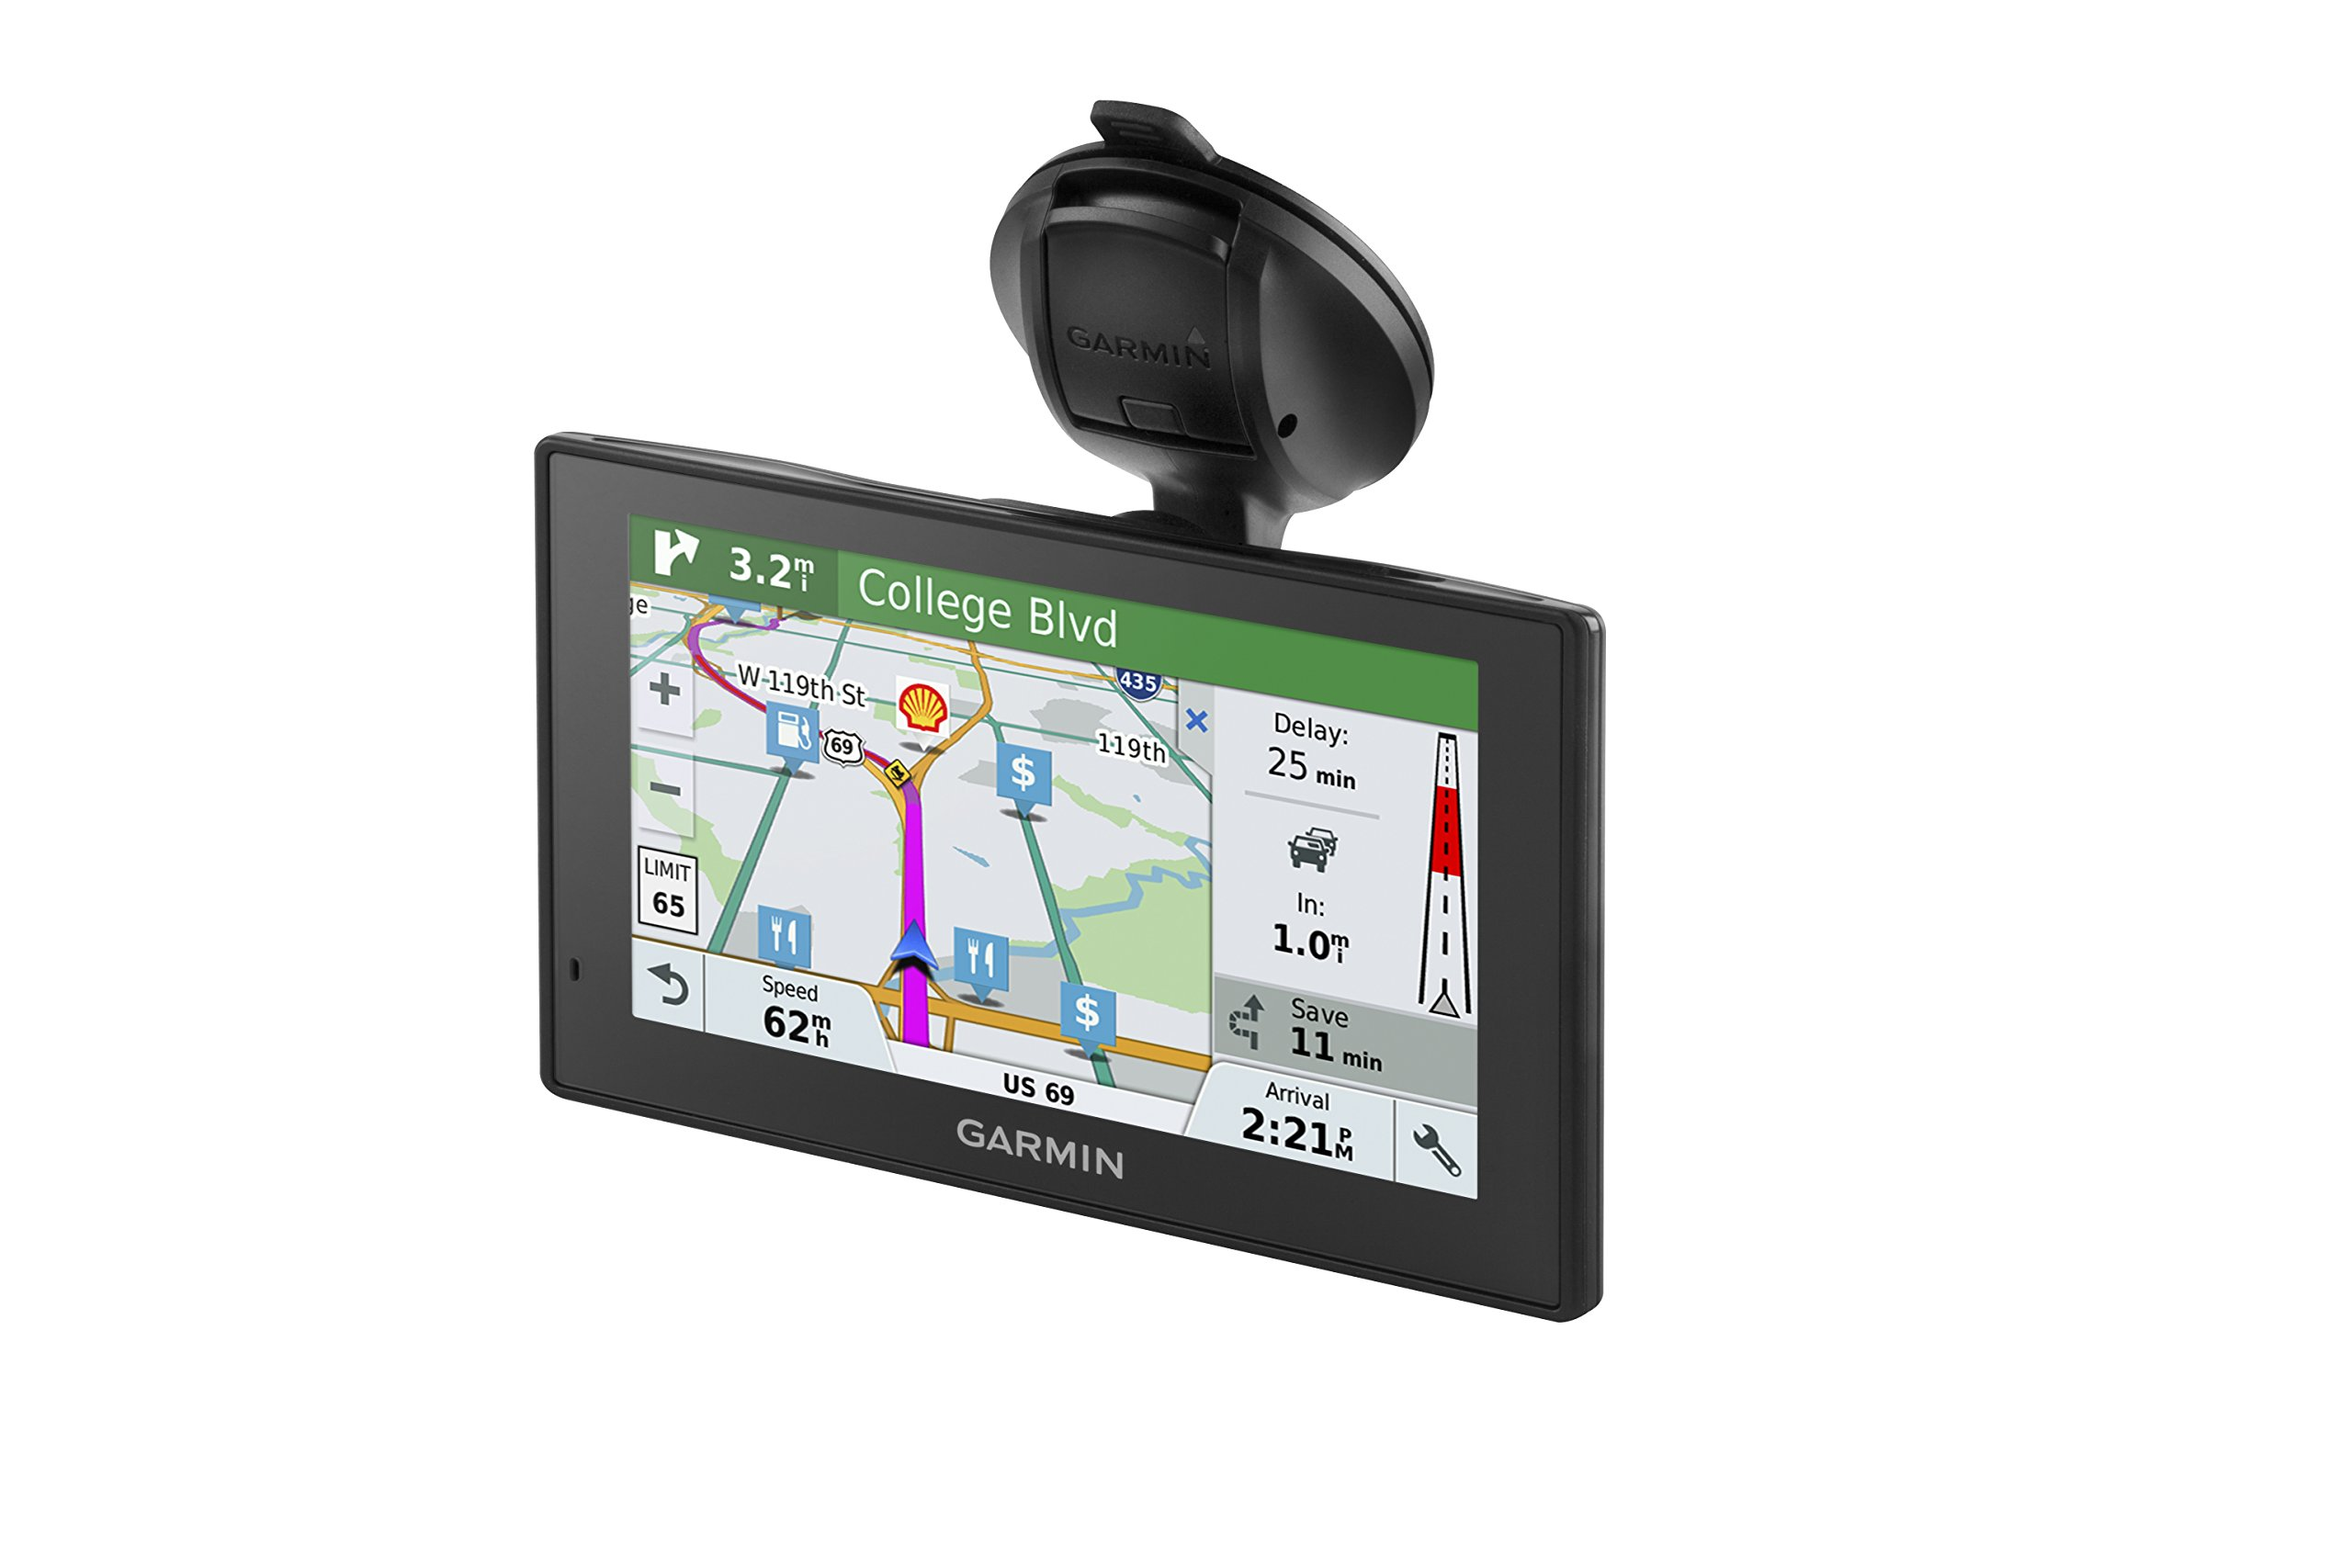 Garmin DriveAssist 51 NA LMT-S w/Lifetime Maps/Traffic, Dash Cam, Camera-assisted Alerts, Lifetime Maps/Traffic,Live Parking, Smart Notifications, Voice Activation by Garmin (Image #4)